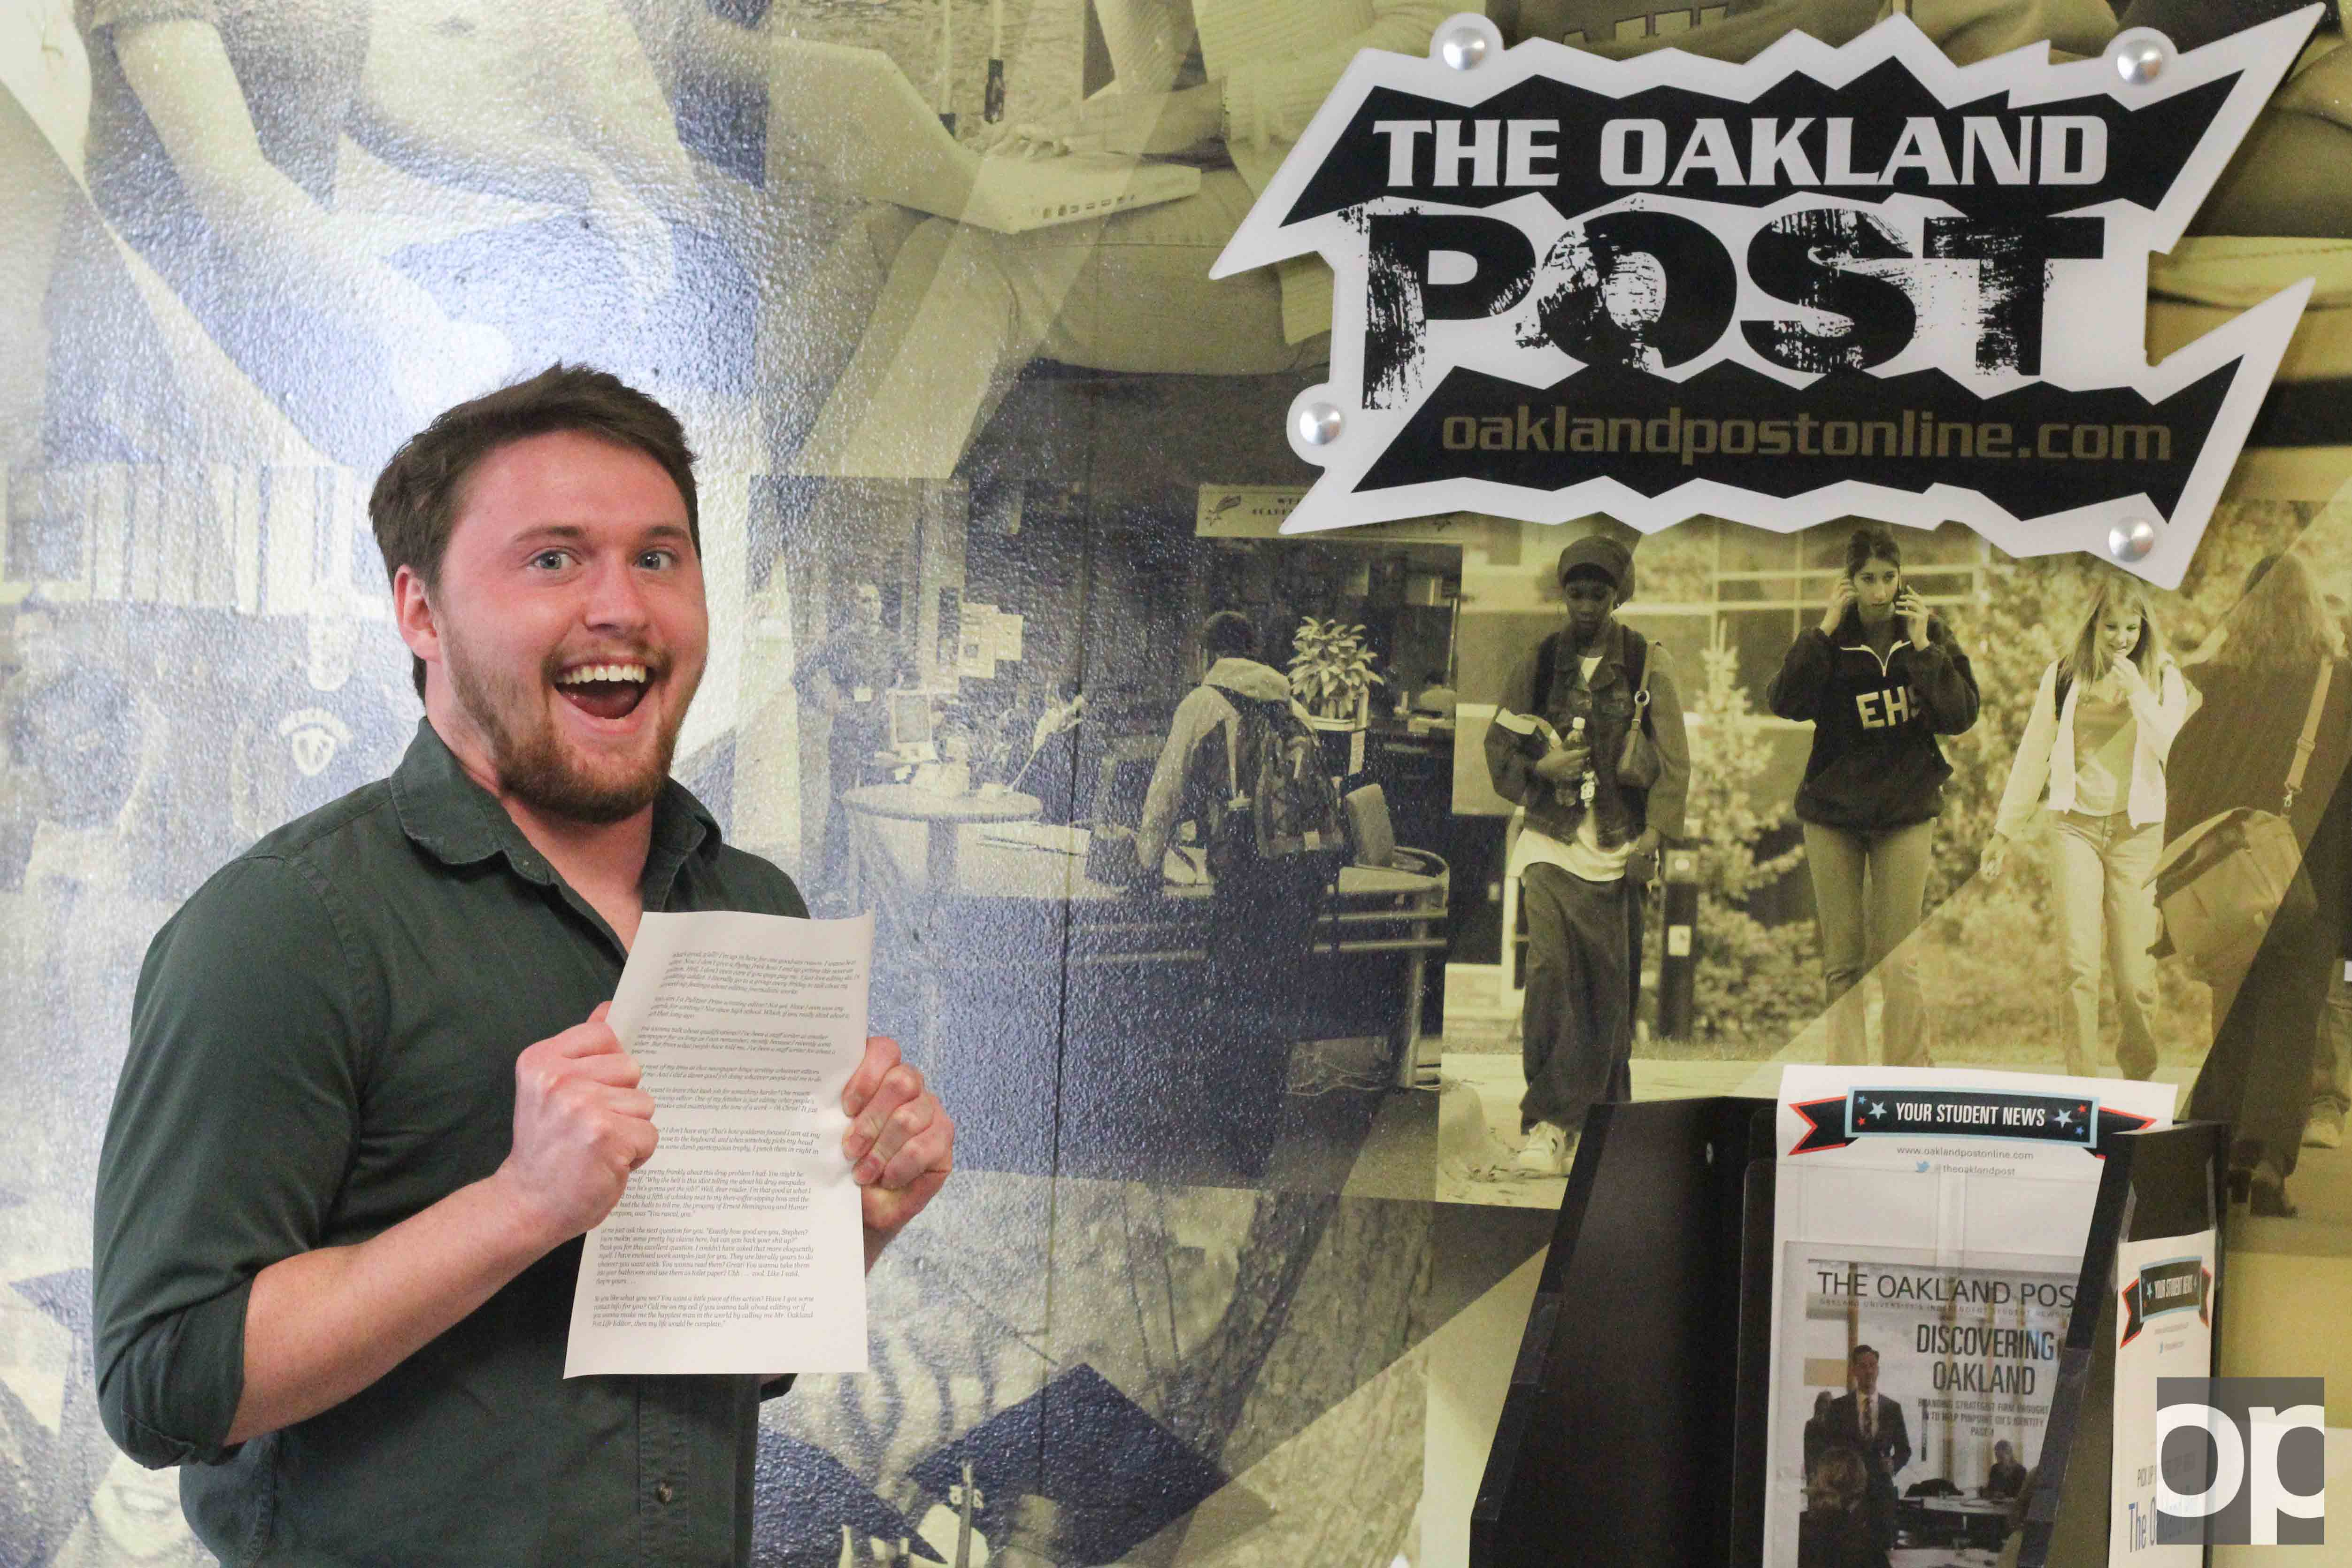 What in life editor application? Stephen Armica, an interesting guy, gets psyched to turn in his cover letter to The Oakland Post.